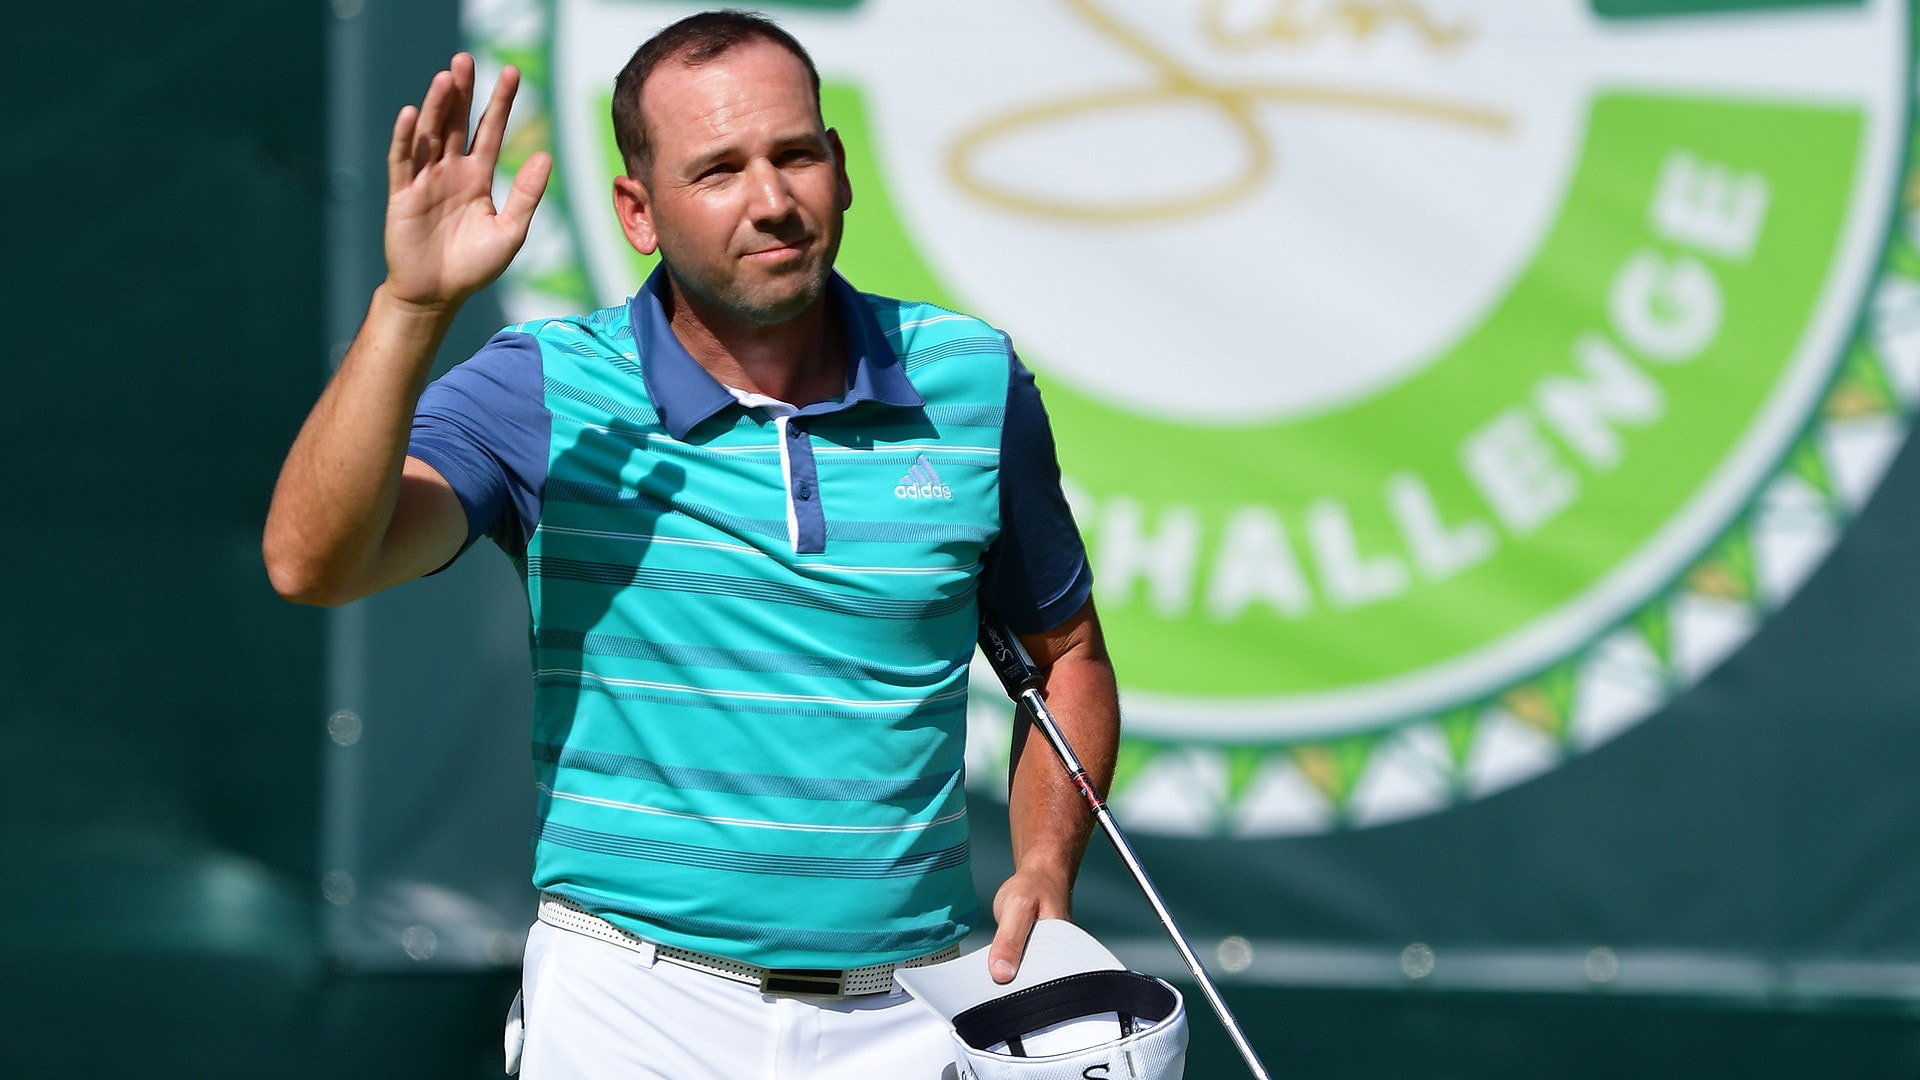 Sergio Garcia at the 2018 Nedbank Challenge